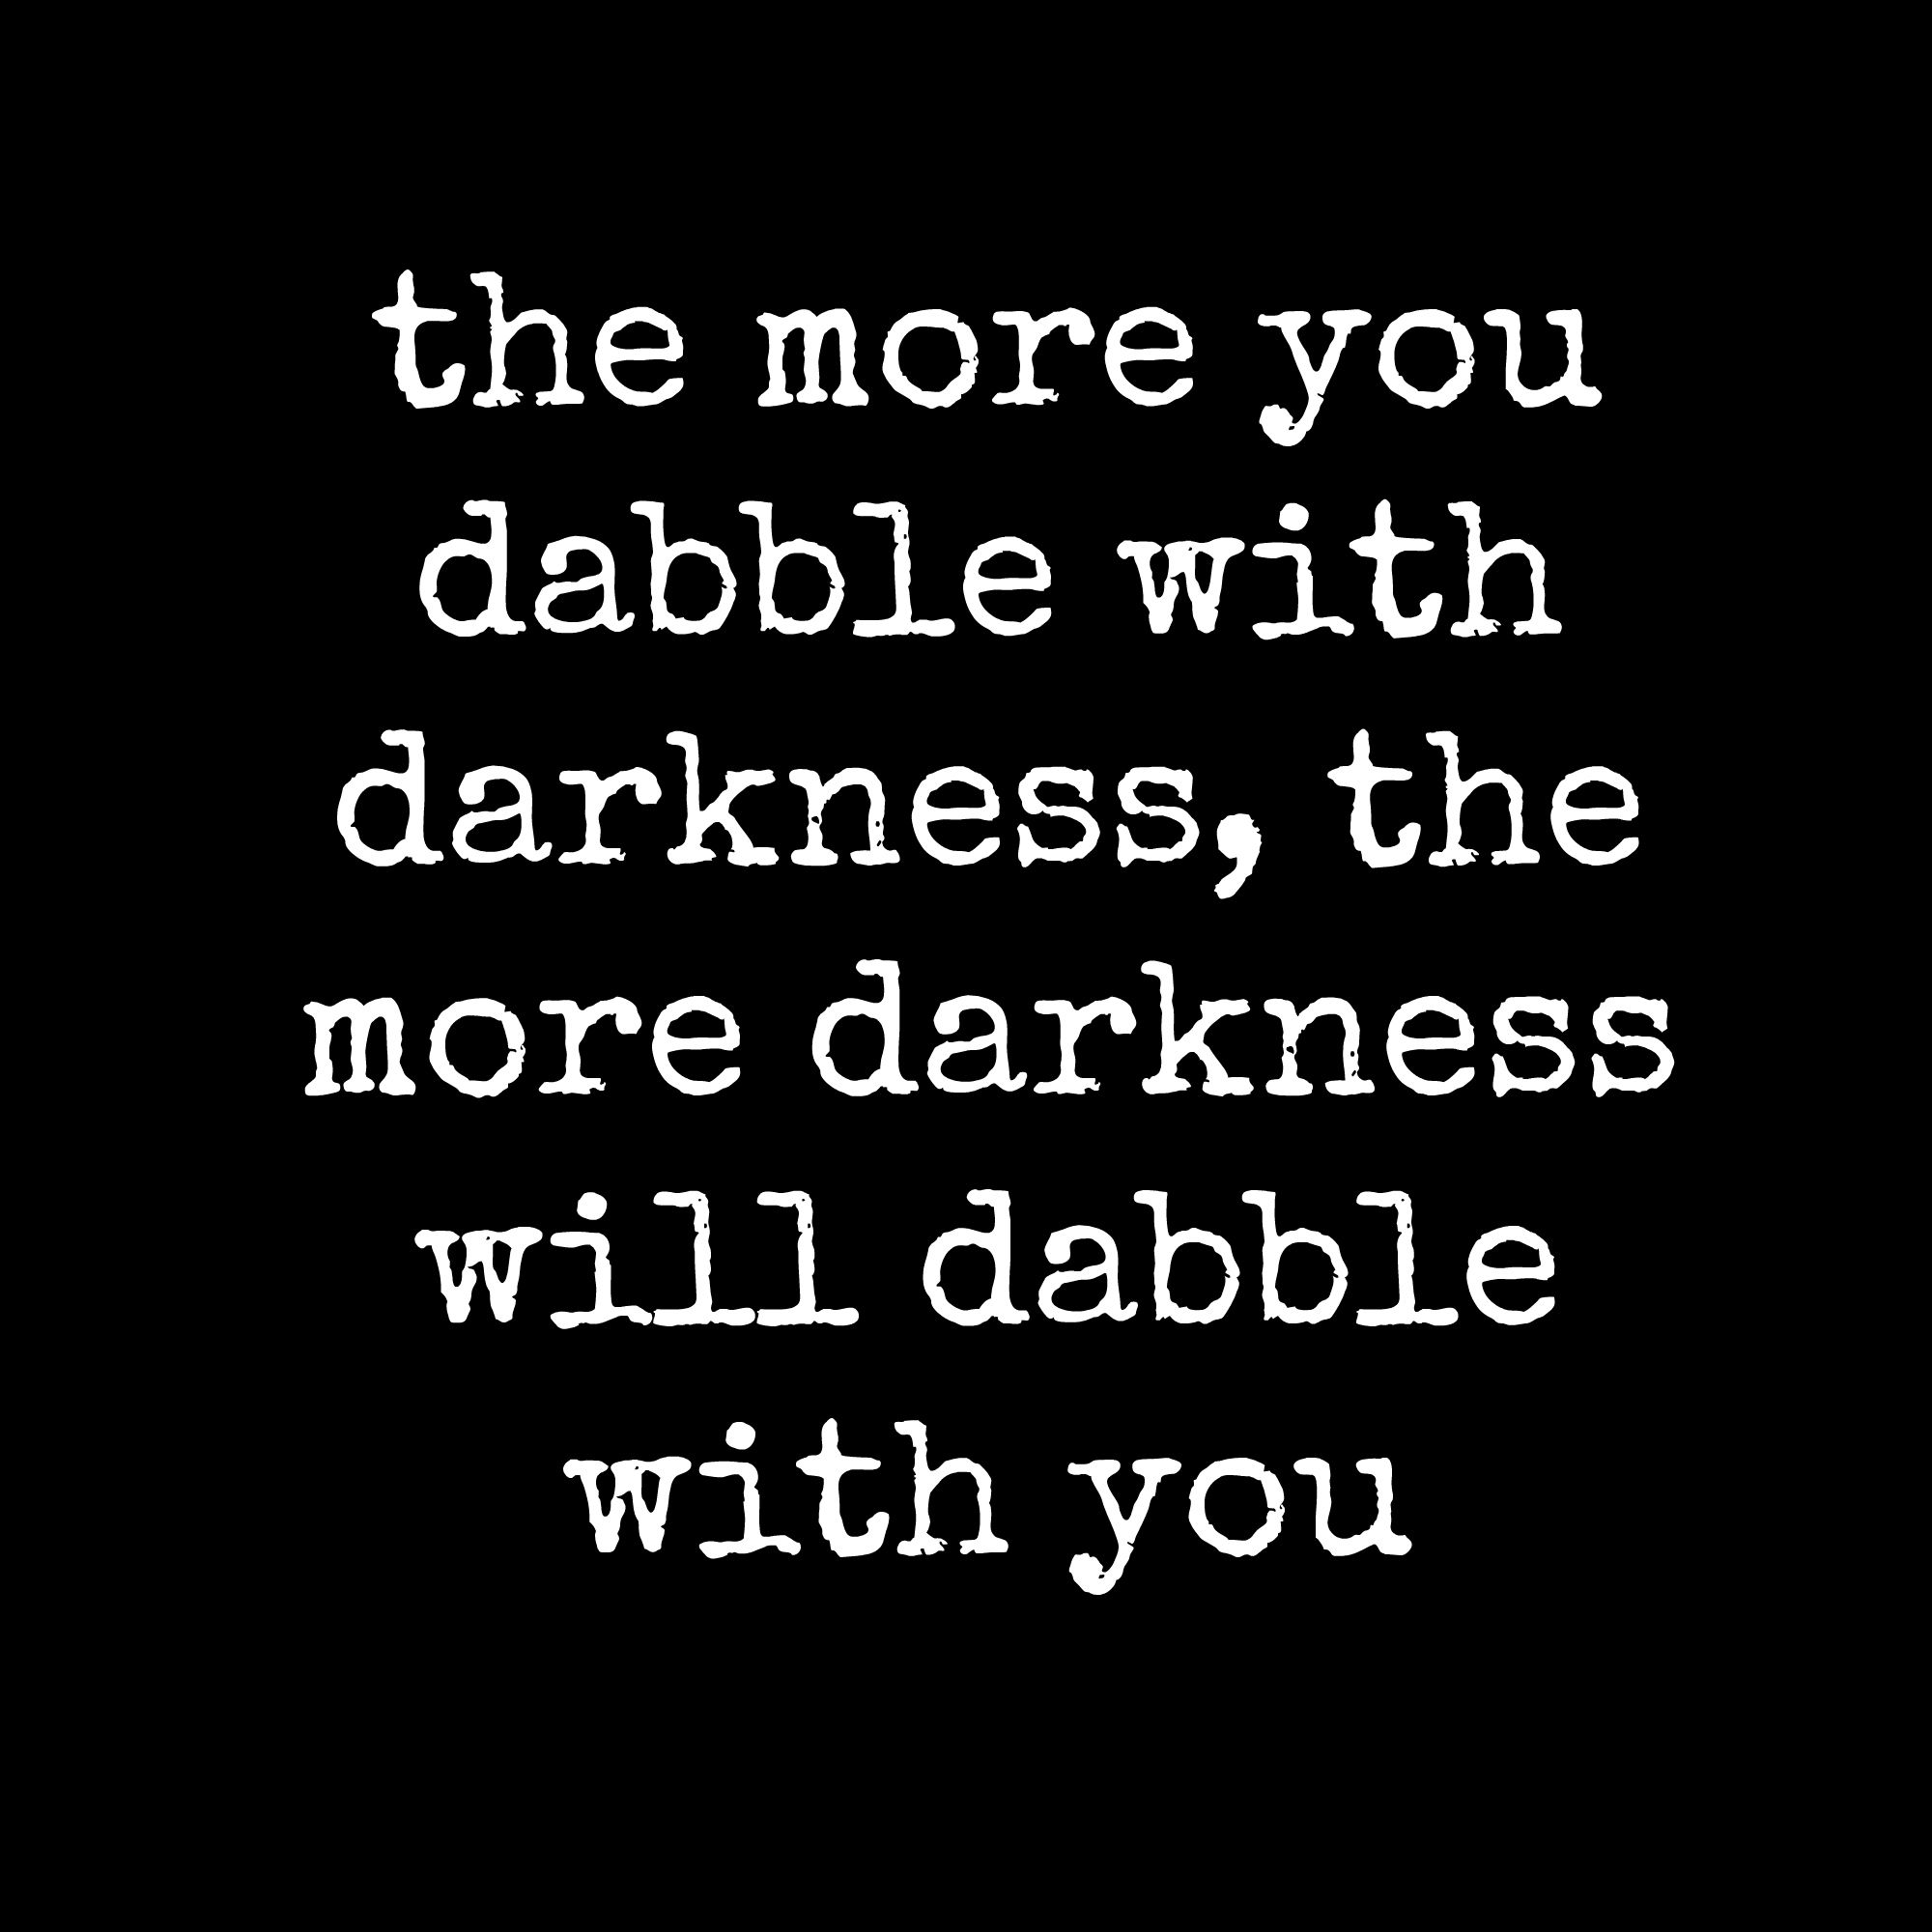 The more you dabble with darkness, the more darkness will dabble with you - Quote